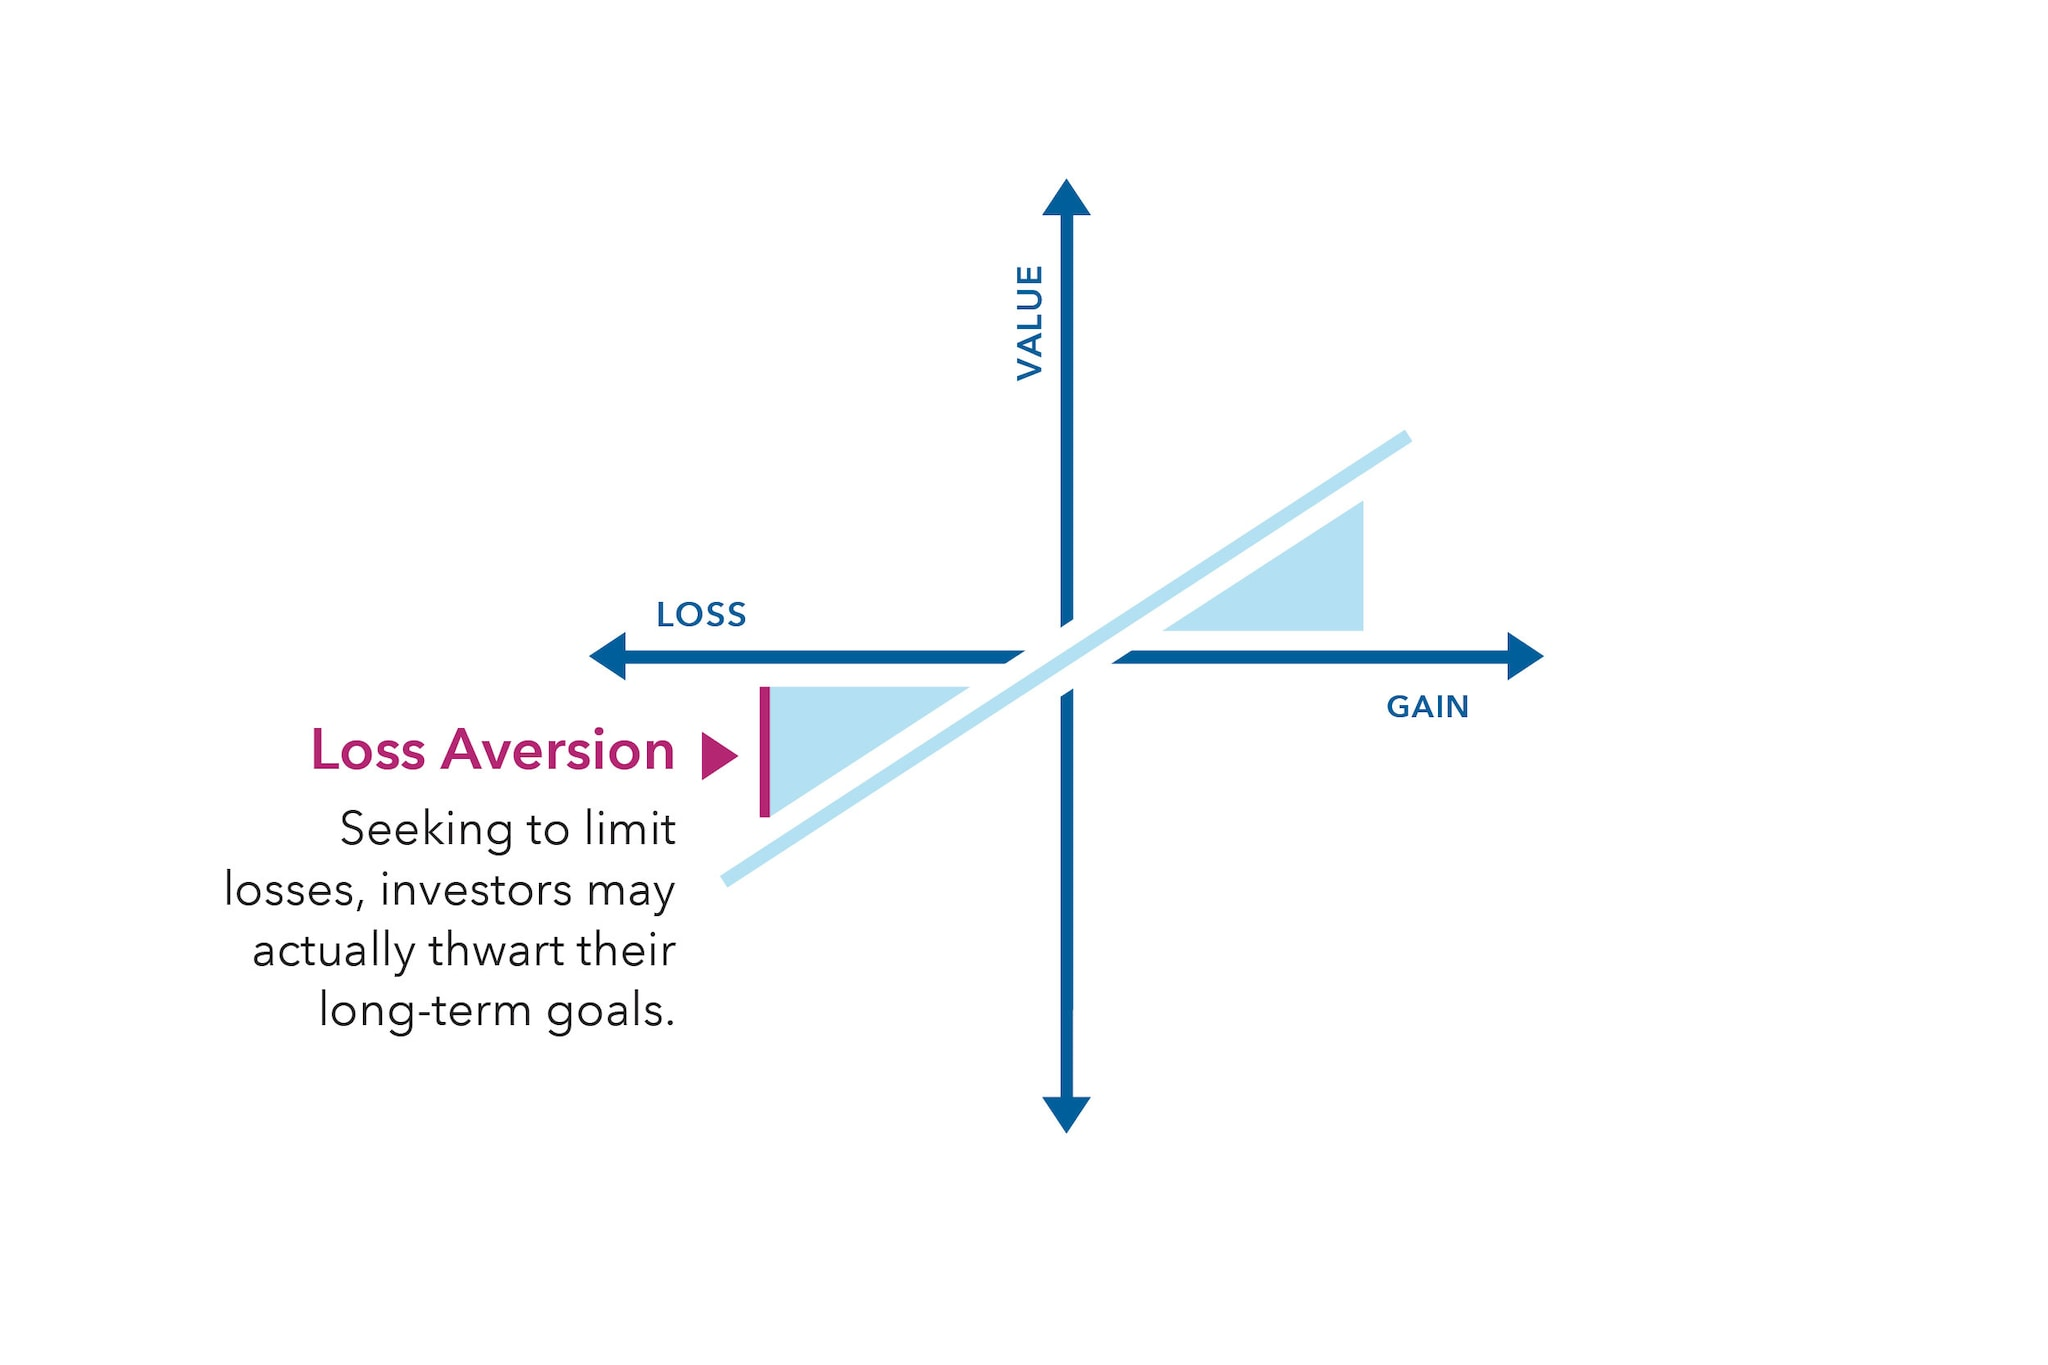 An XY graph displaying a movement from loss to gain along the X axis, and value on the Y axis. A line beginning in quadrant 3 shows that when investors seek to limit losses, they may actually thwart their long term goals, resulting in loss aversion. The line moves through the origin and into quadrant 1, showing positive results when investors focus on increased gains and value.